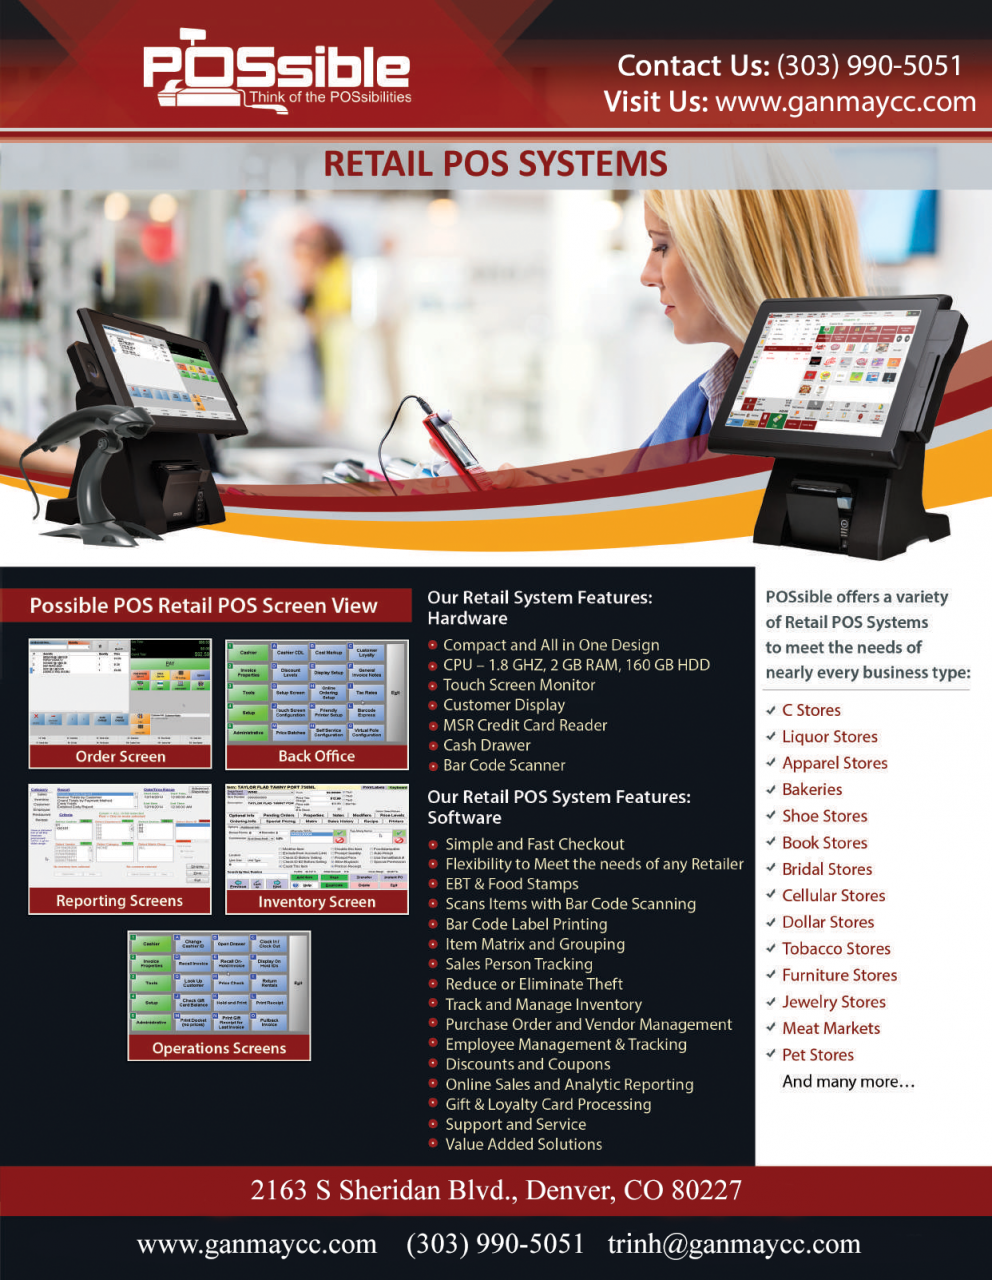 Possible-POS-Retail-POS-Systems